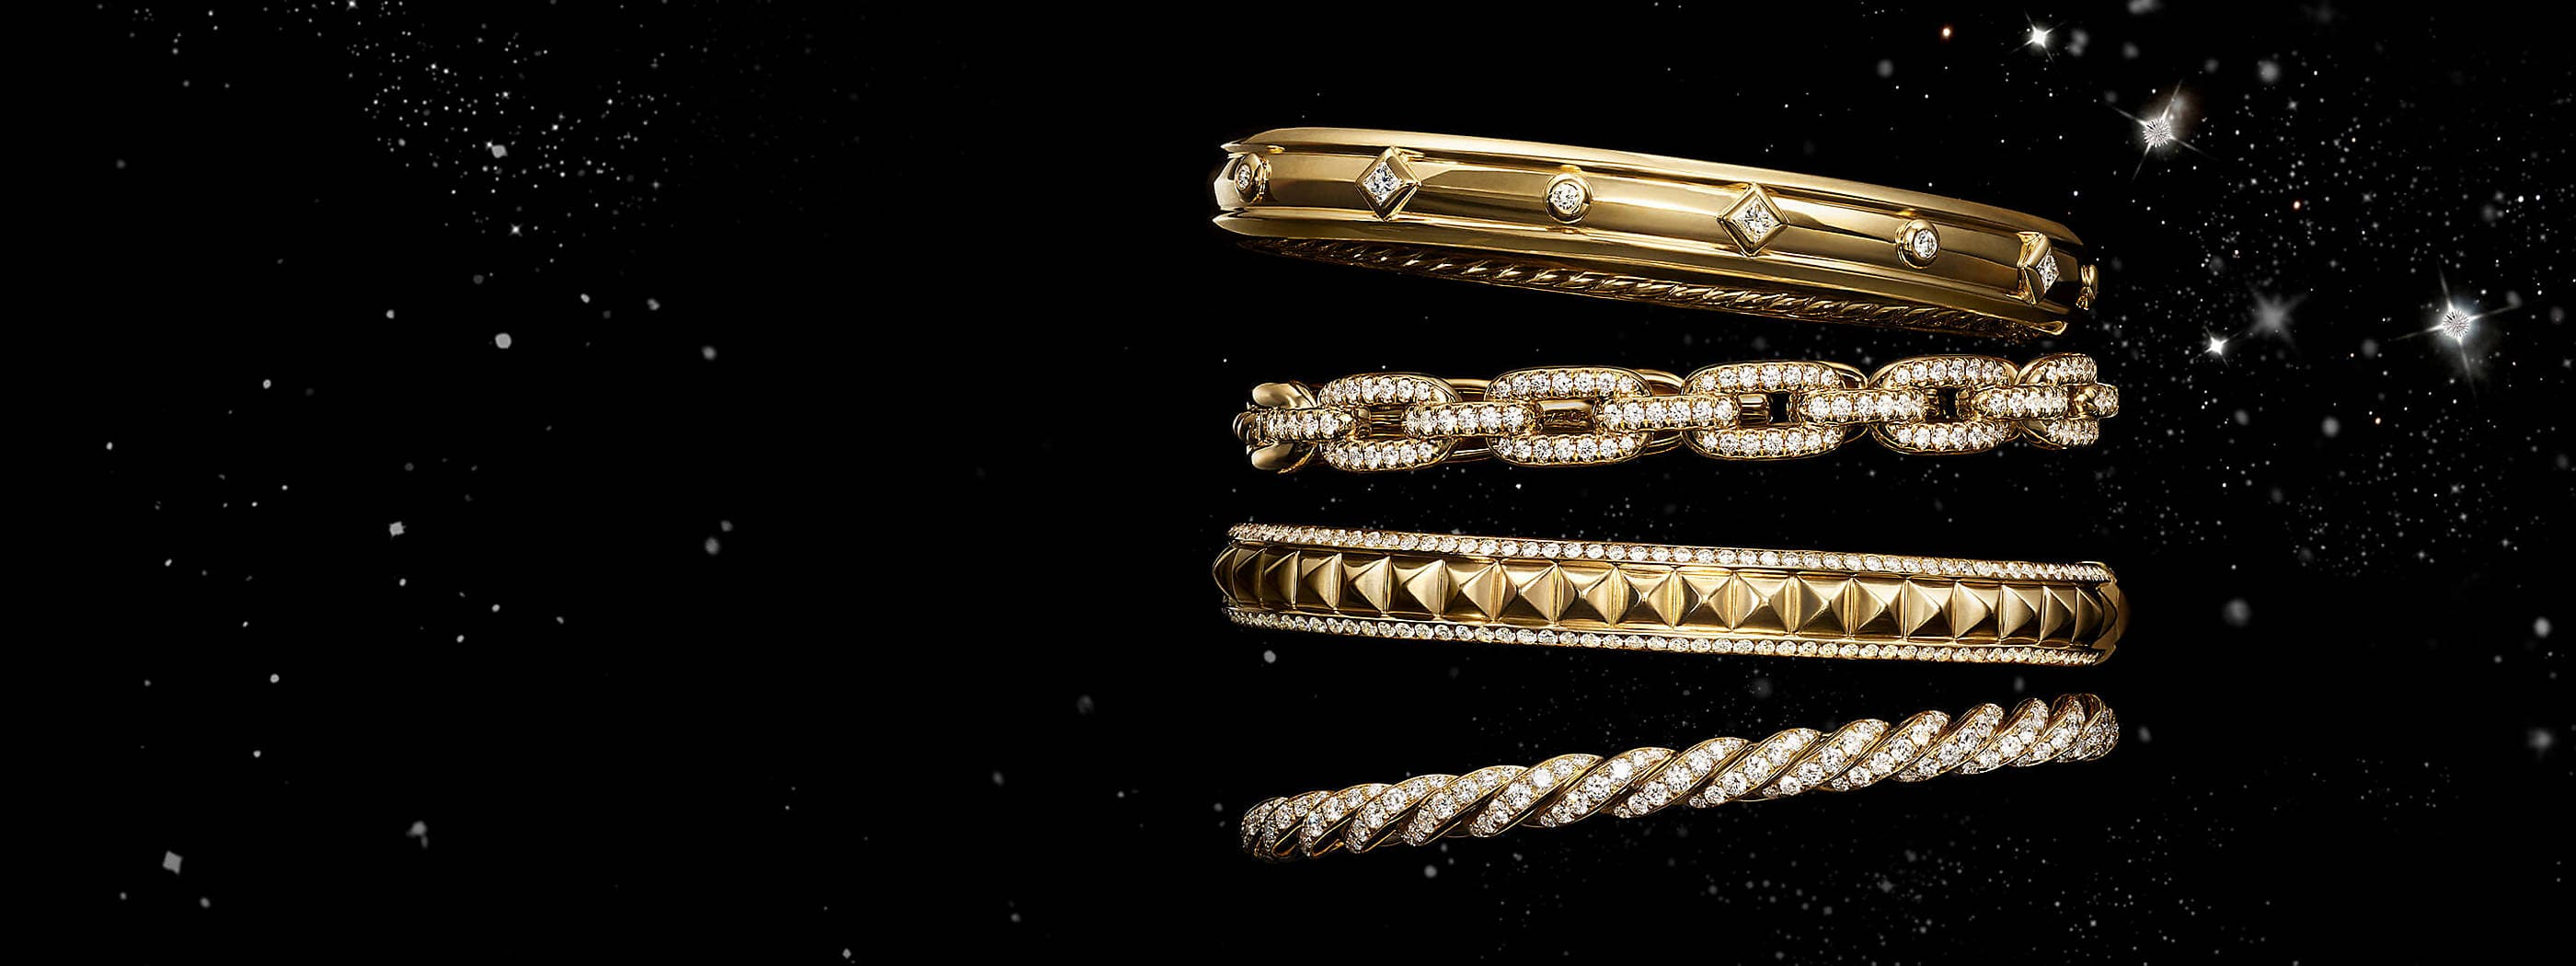 A color photo shows a vertical stack of four David Yurman women's bracelets from the Modern Renaissance, Stax and Pavéflex collections floating in front of a starry night sky. The jewelry is crafted from 18K yellow gold with diamonds.